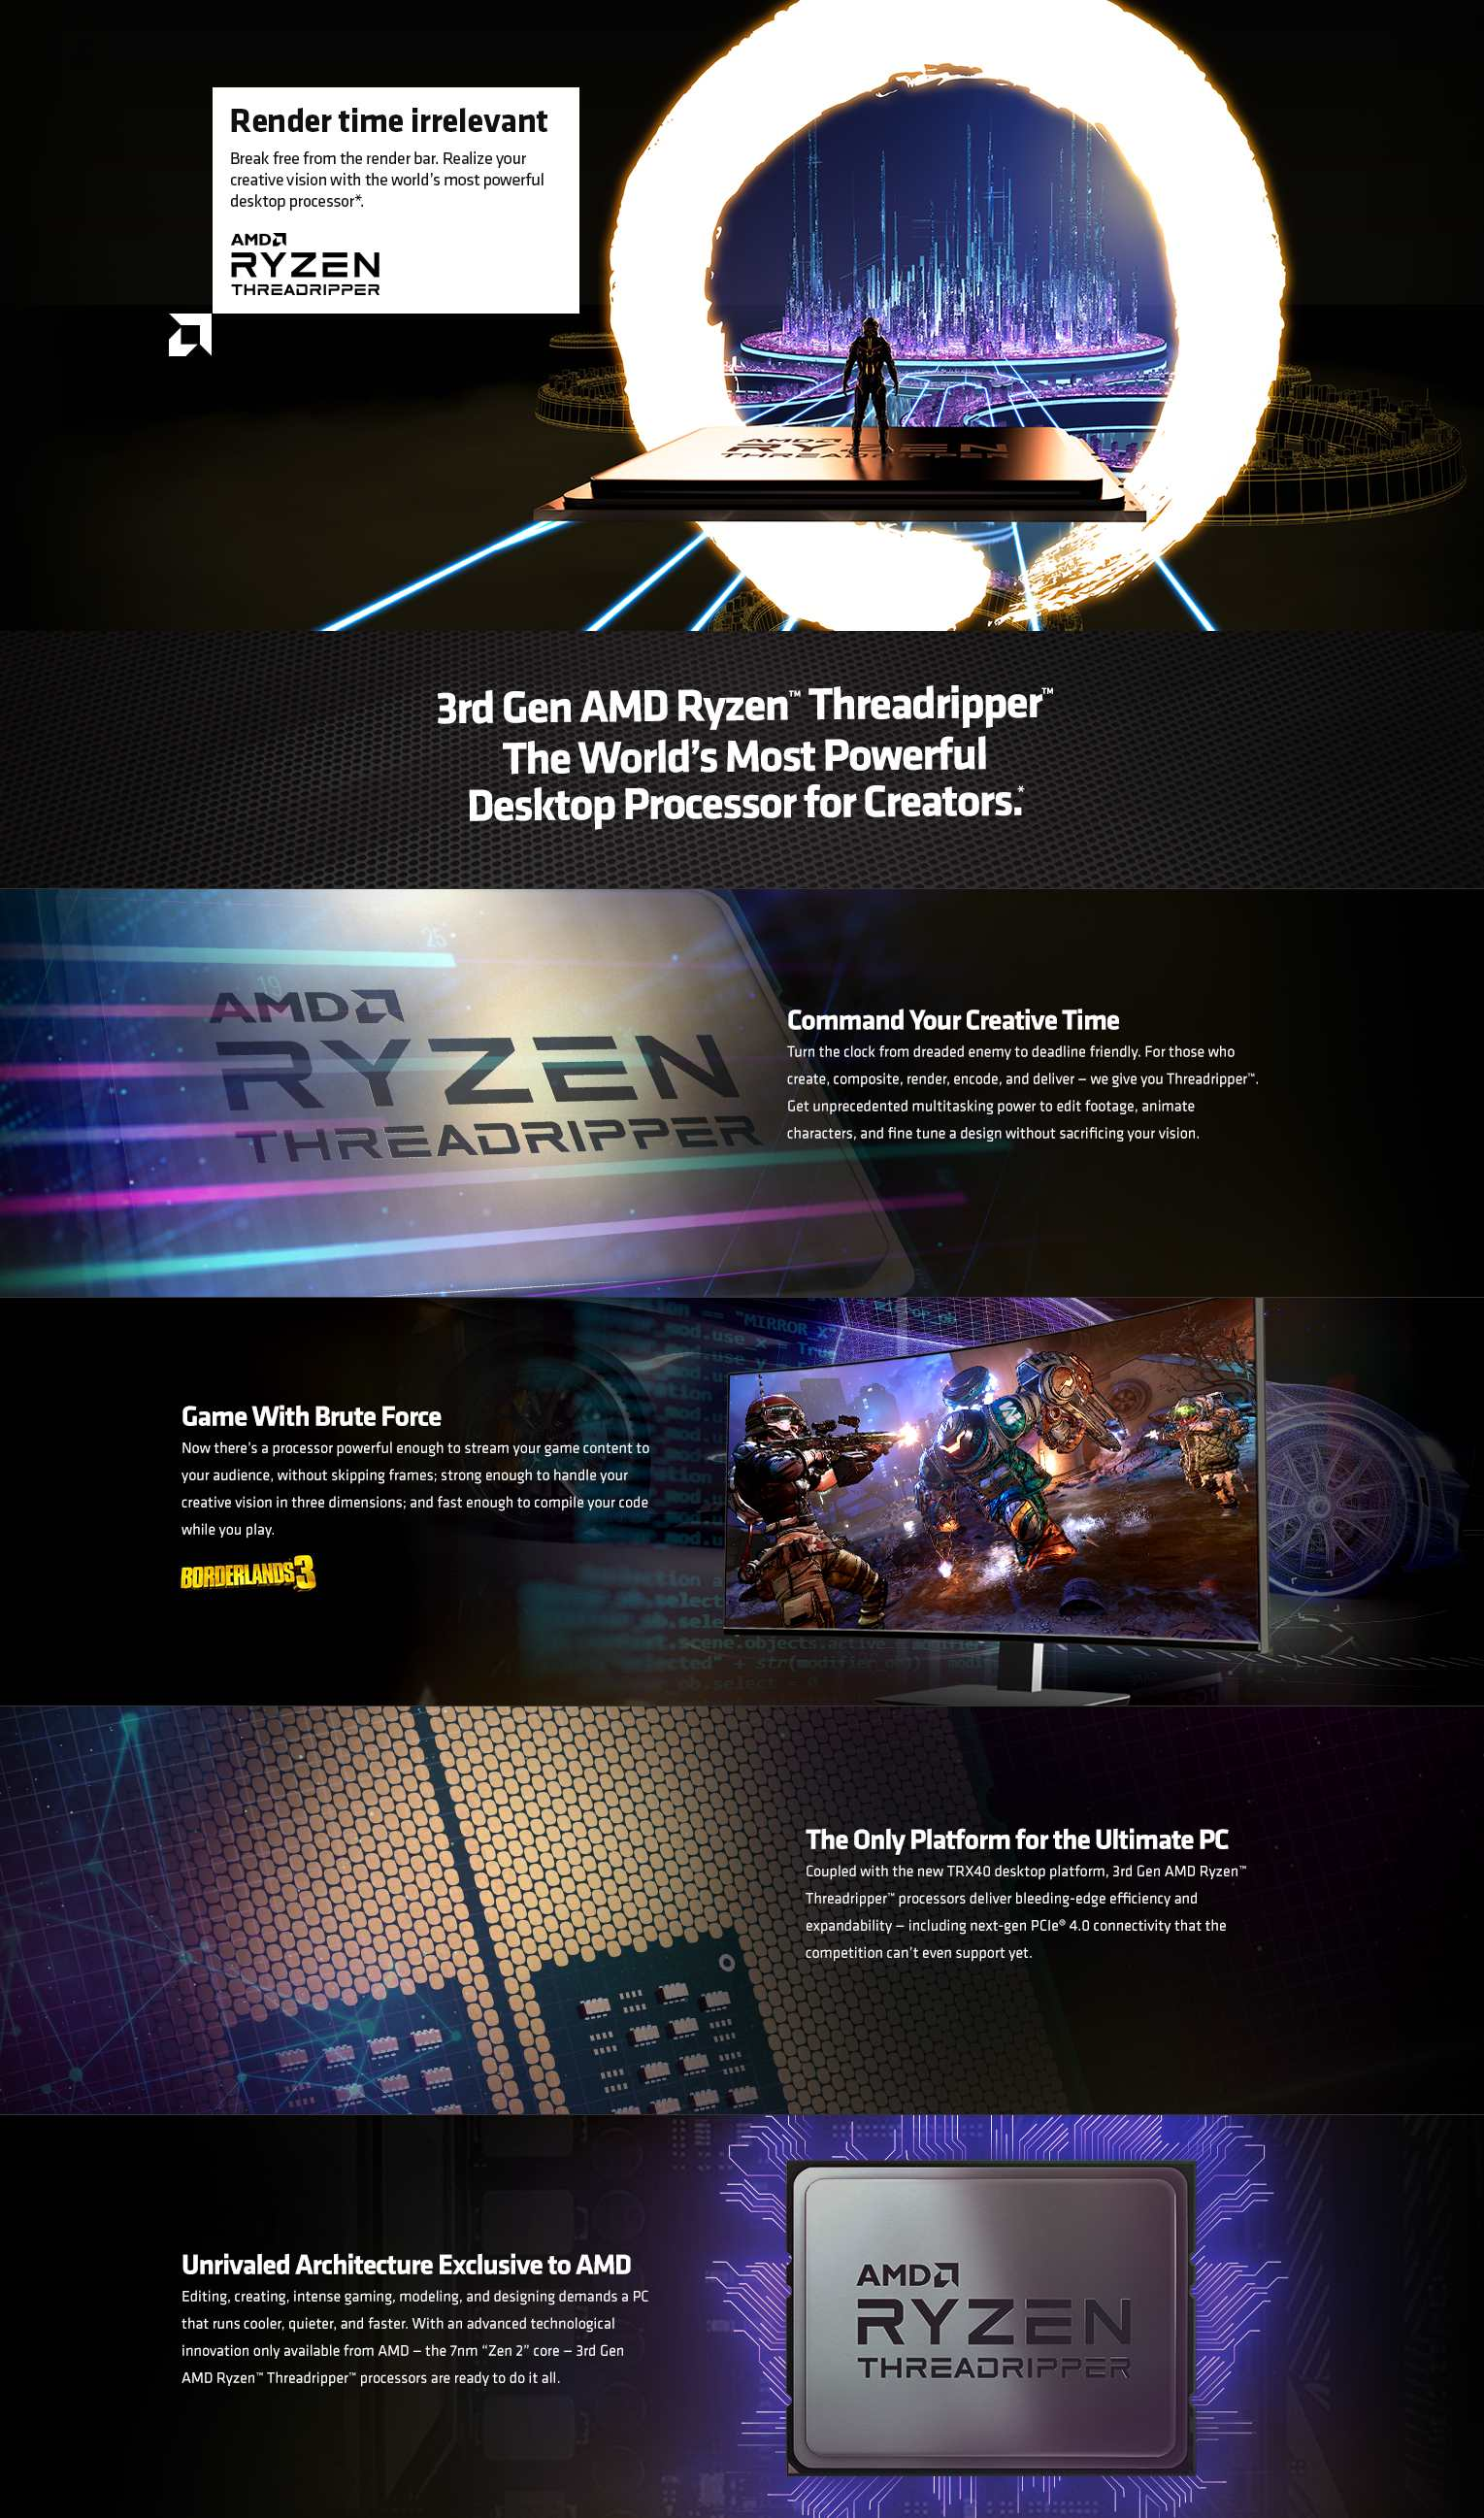 A large marketing image providing additional information about the product AMD Ryzen Threadripper 3970X 32 Core 64 Thread Up To 4.5Ghz 128MB sTRX4 Processor - No HSF Retail Box - Additional alt info not provided